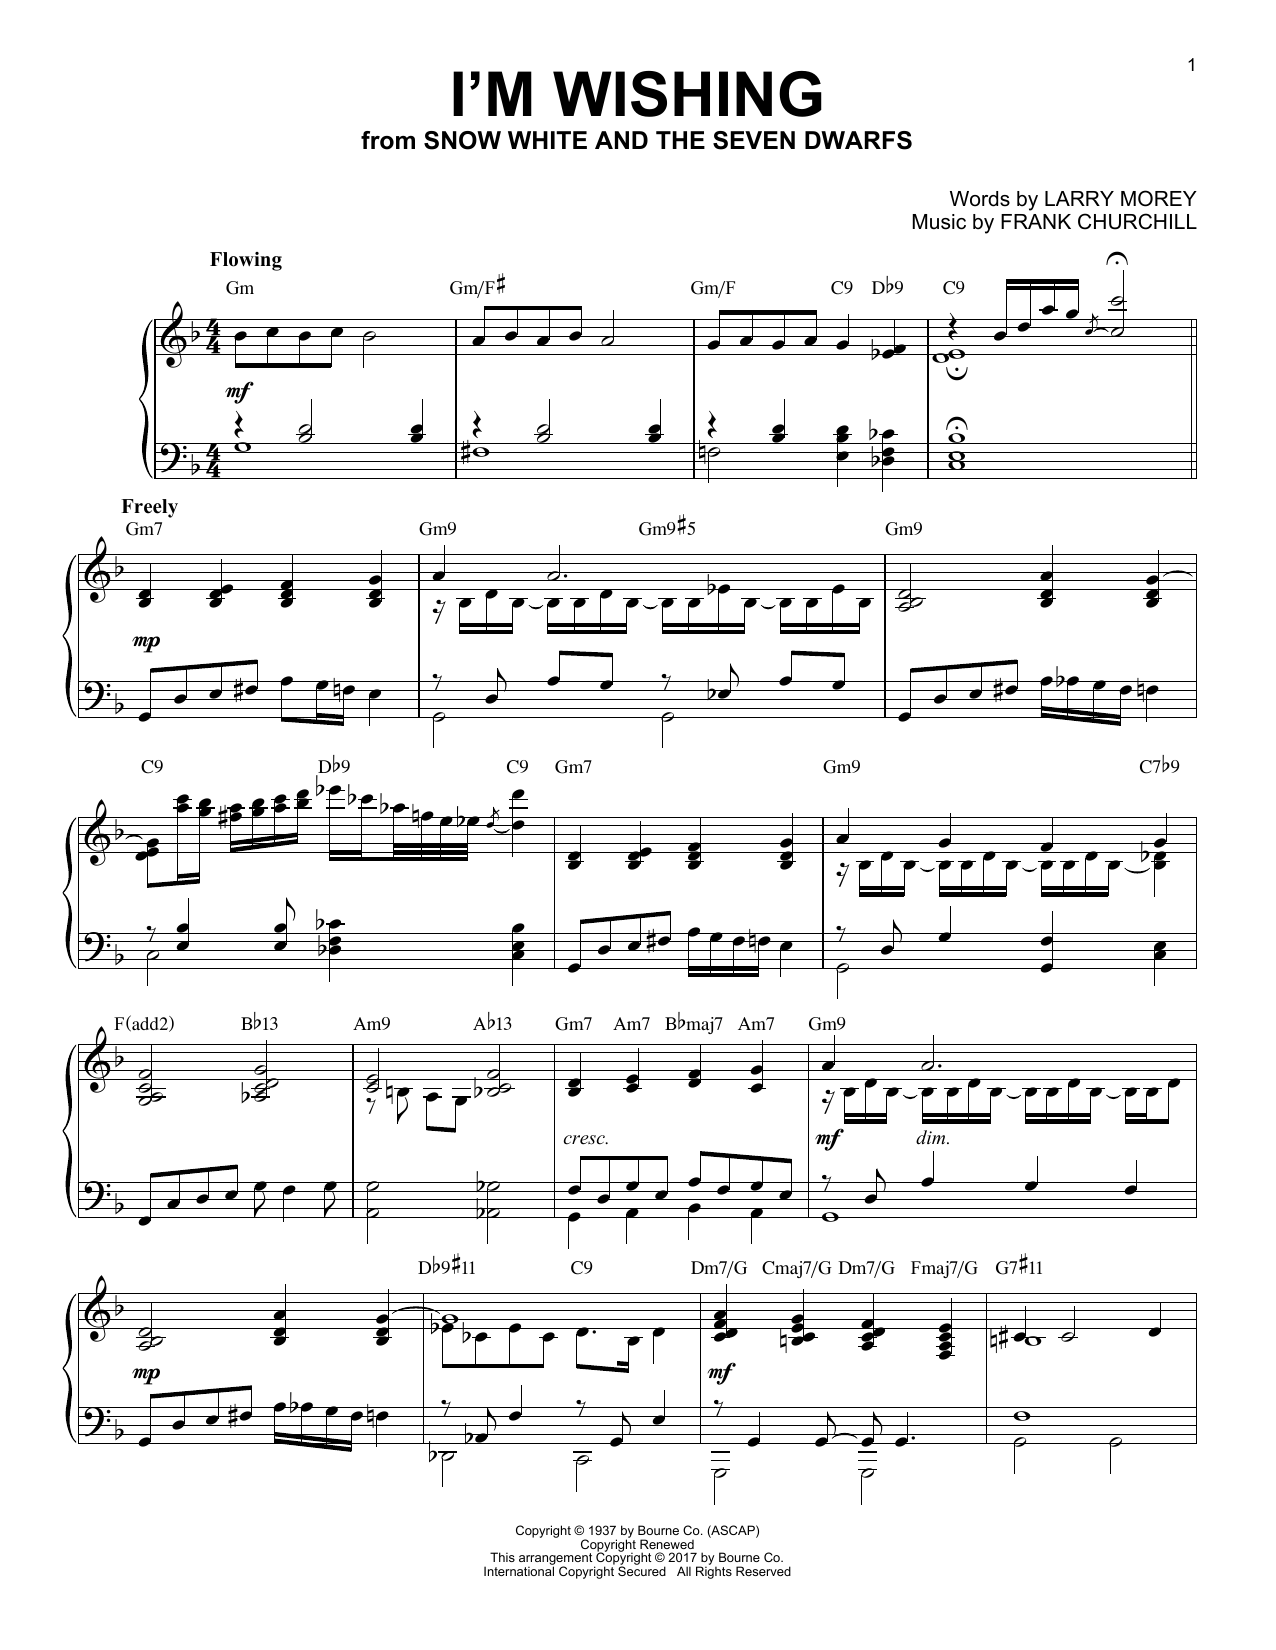 Larry Morey I'm Wishing [Jazz version] (from Disney's Snow White And The Seven Dwarfs) sheet music notes and chords. Download Printable PDF.